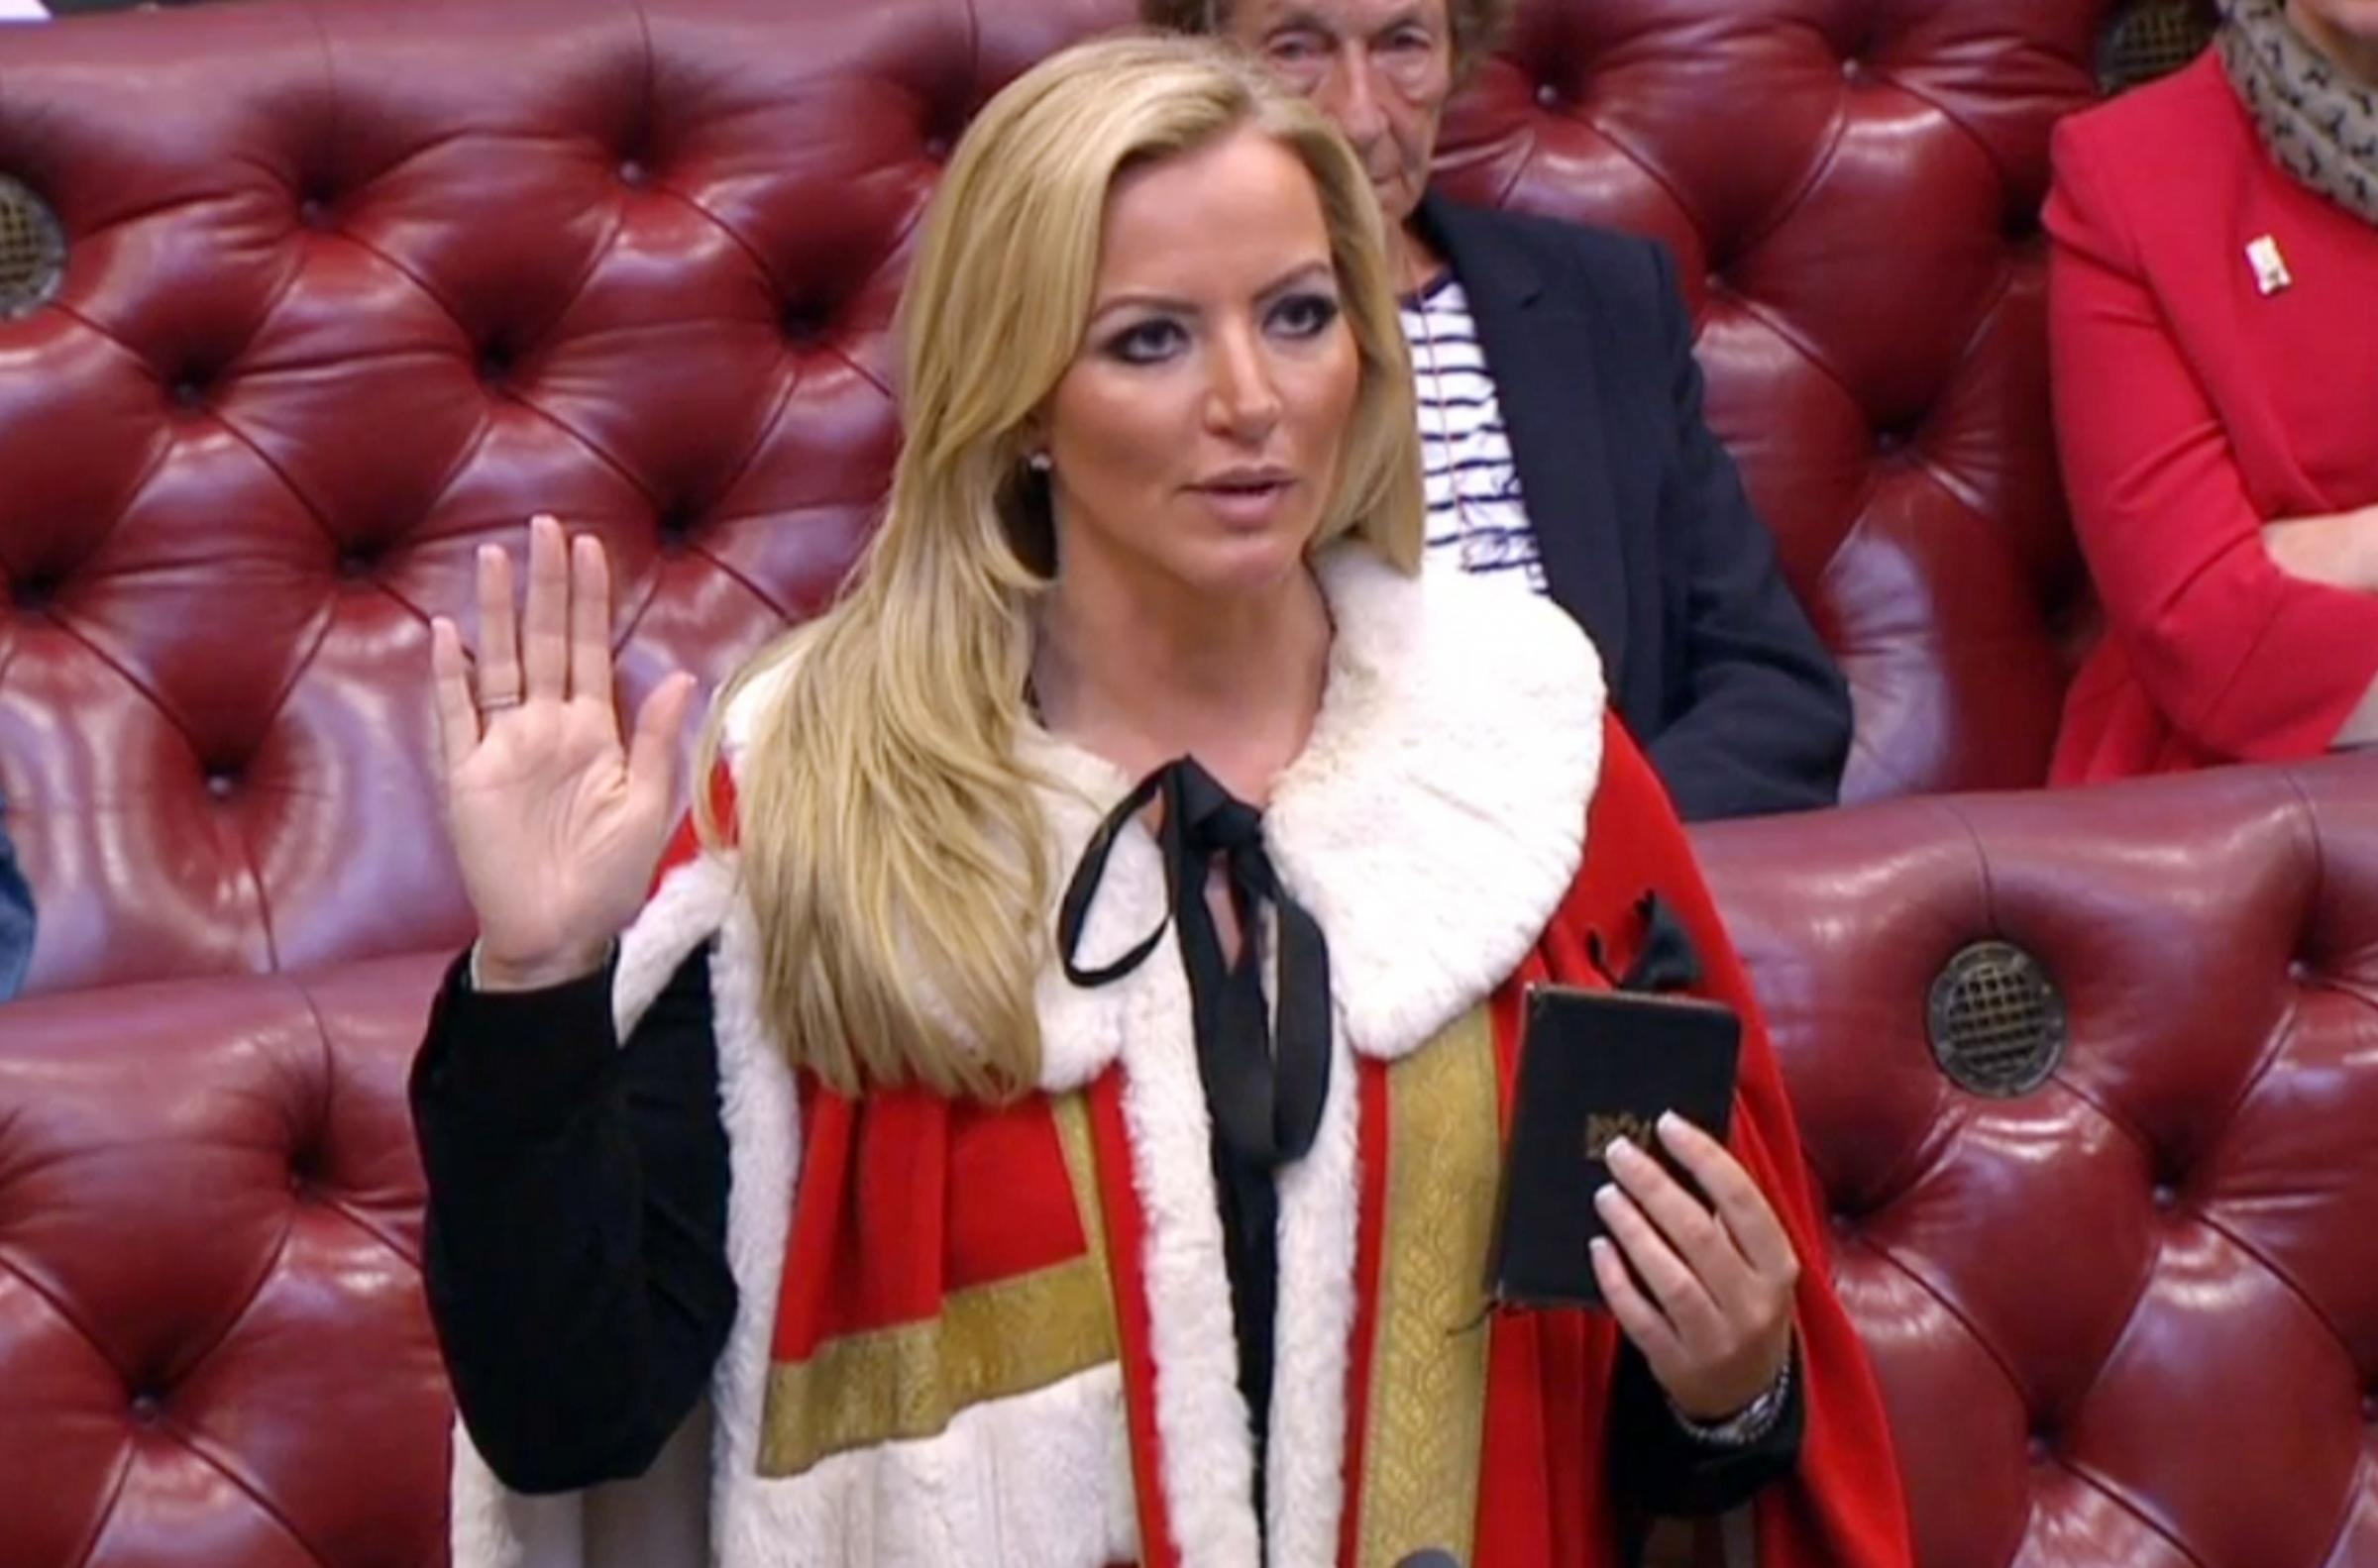 Tory Lord Michelle Mone